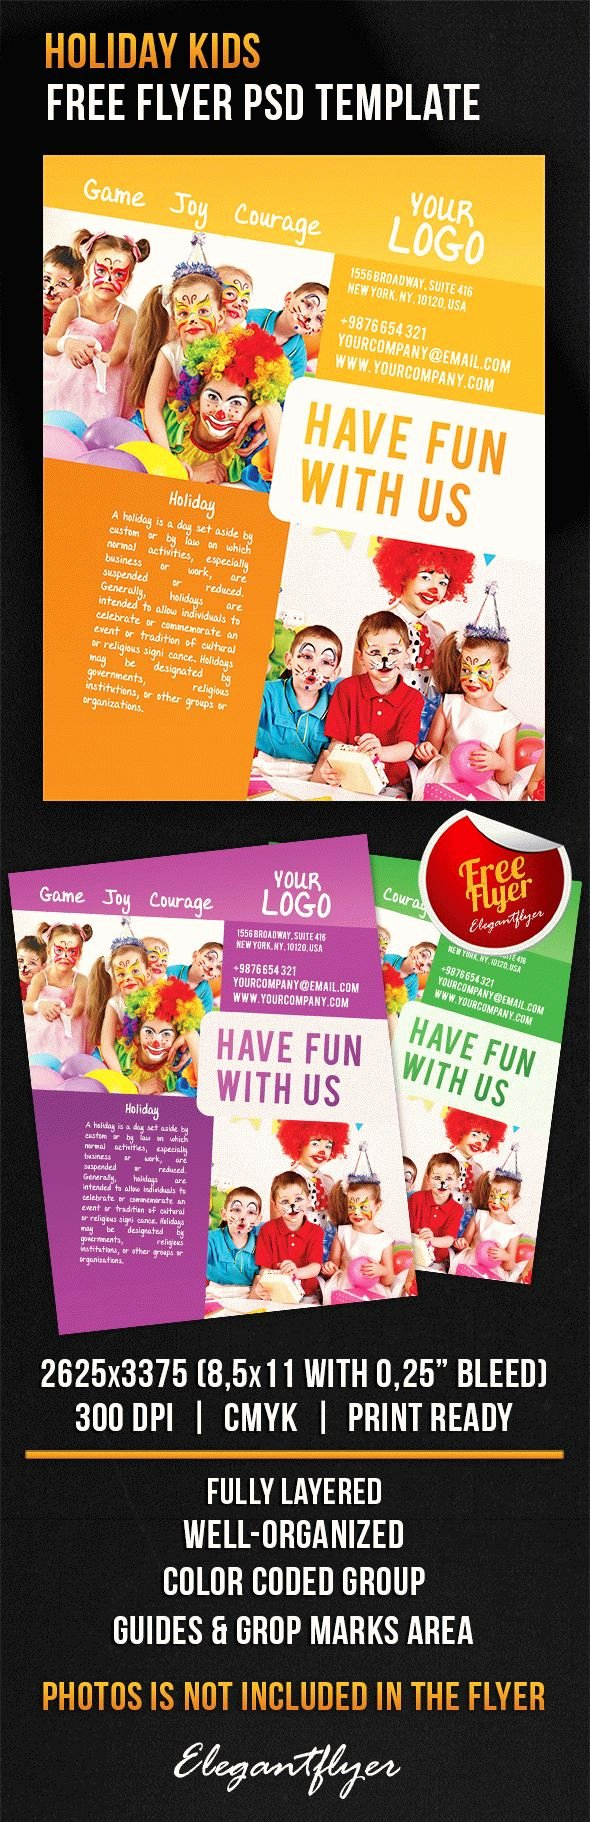 Free Holiday Flyer Template Fresh Holiday Kids – Free Flyer Psd Template – by Elegantflyer